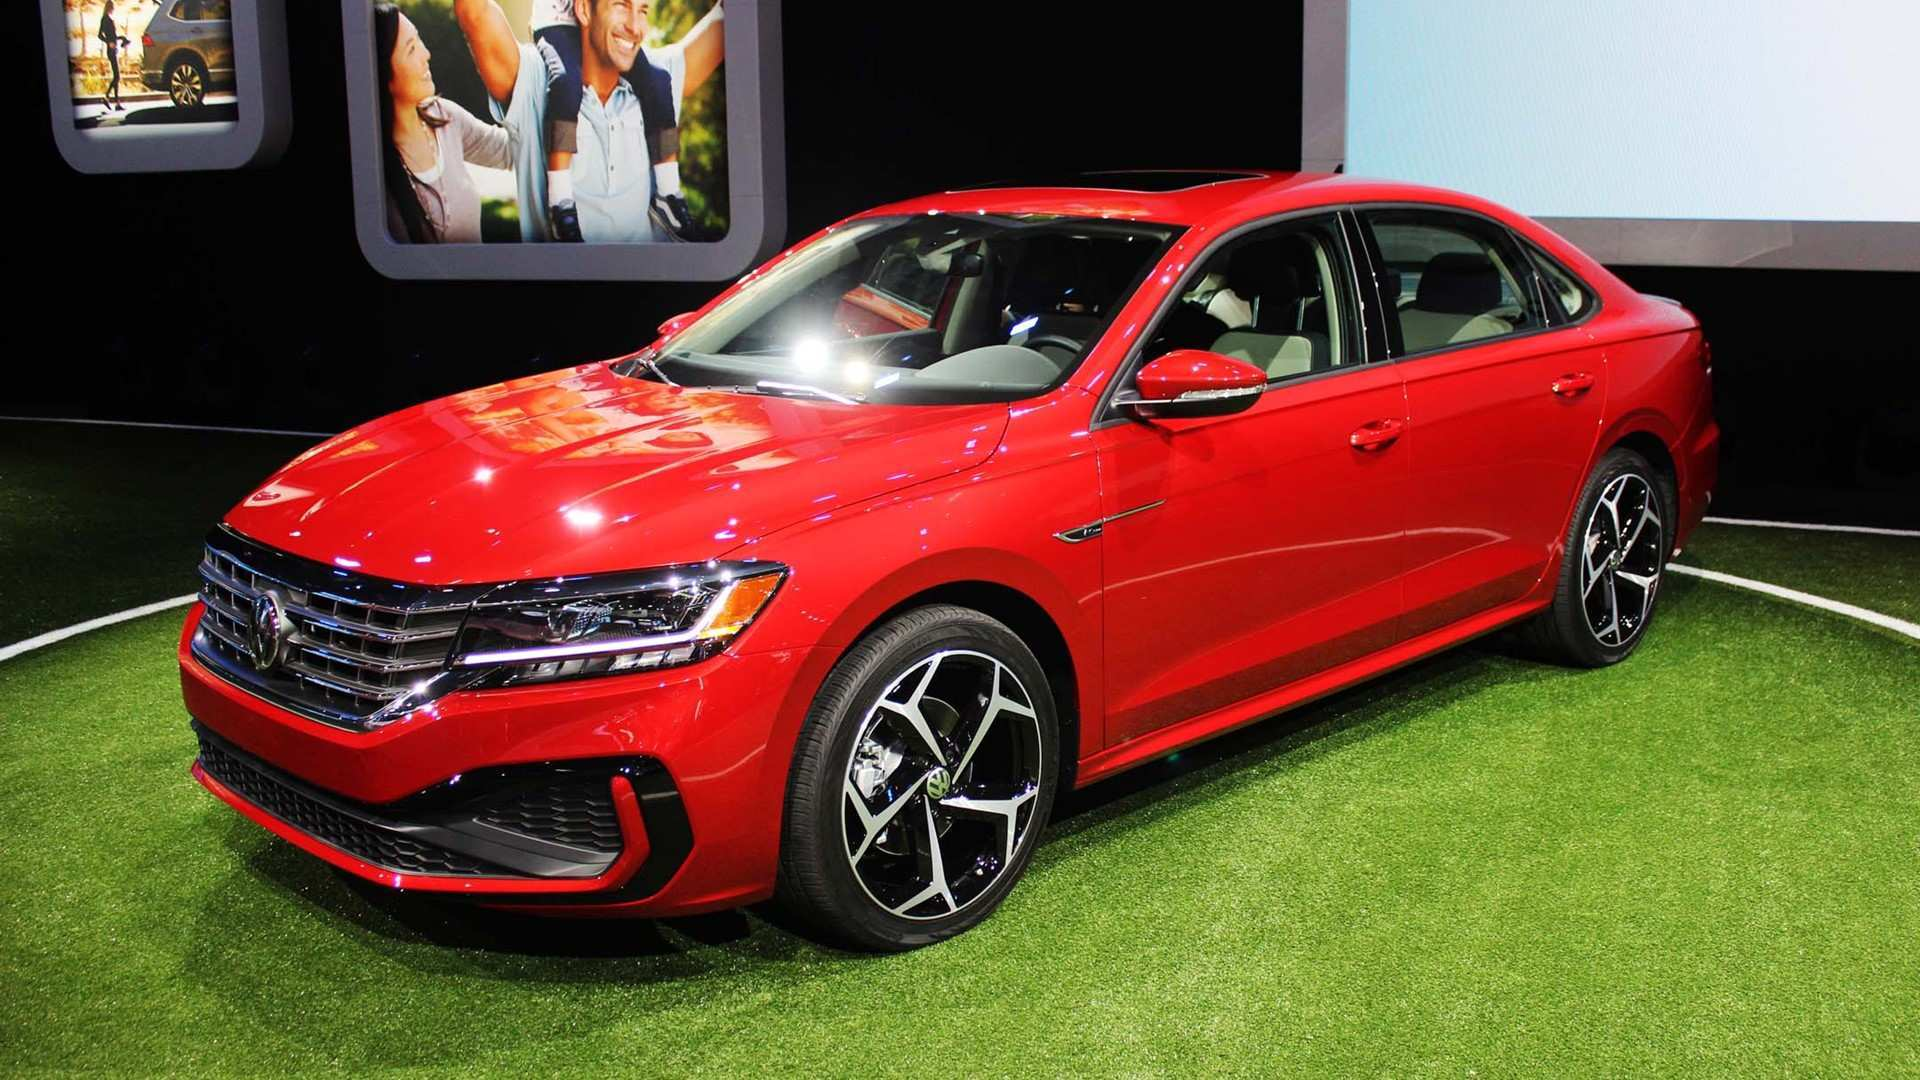 17 The New Volkswagen Jetta 2020 Picture for New Volkswagen Jetta 2020